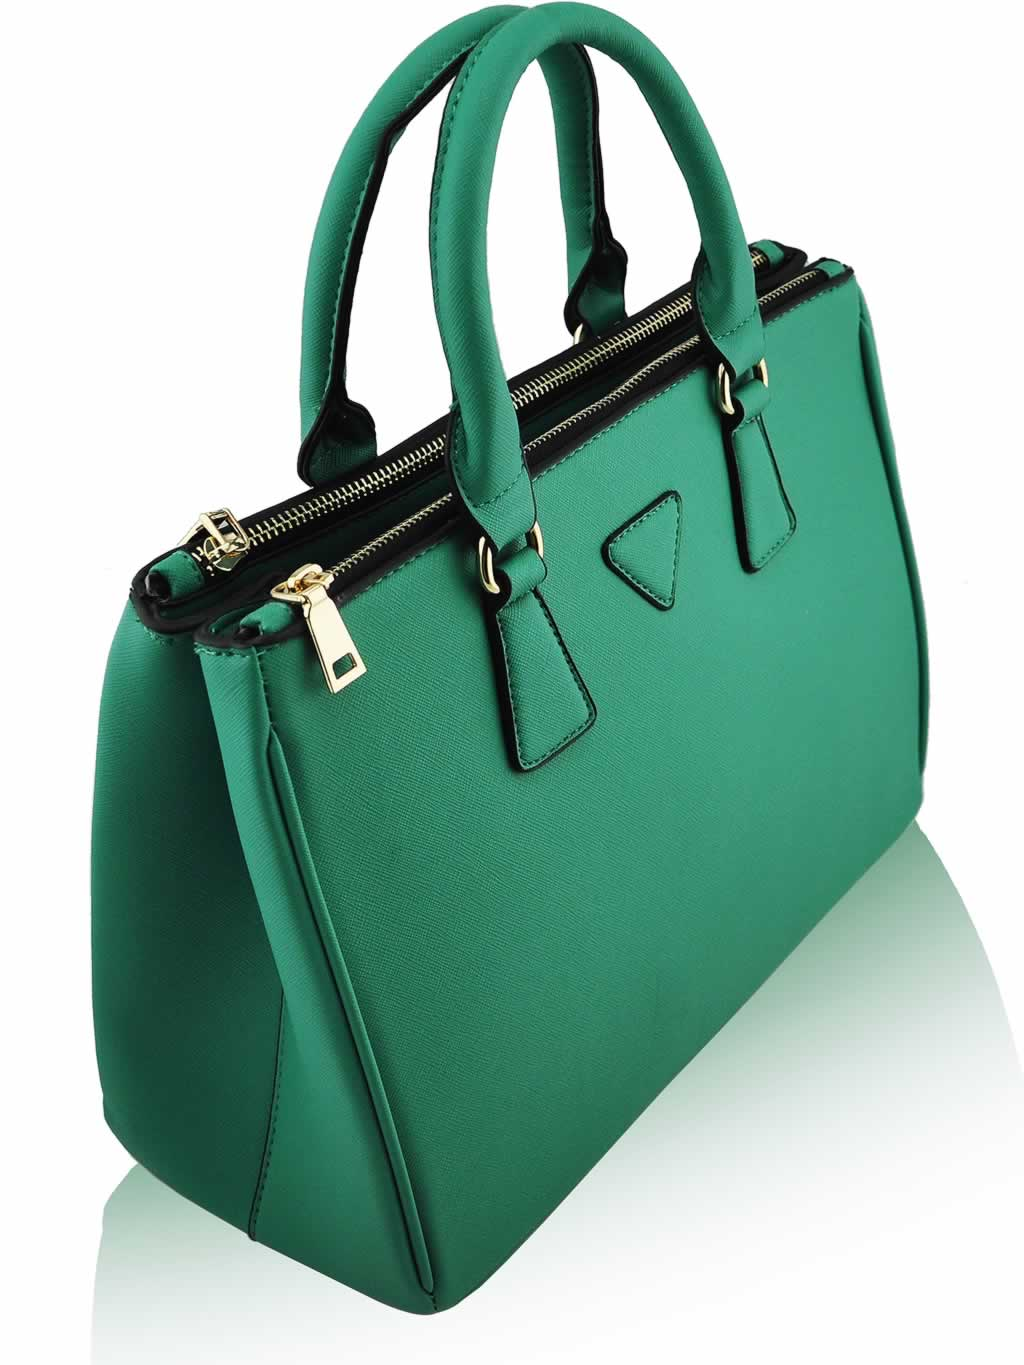 Emerald Green Handbag Mc Luggage